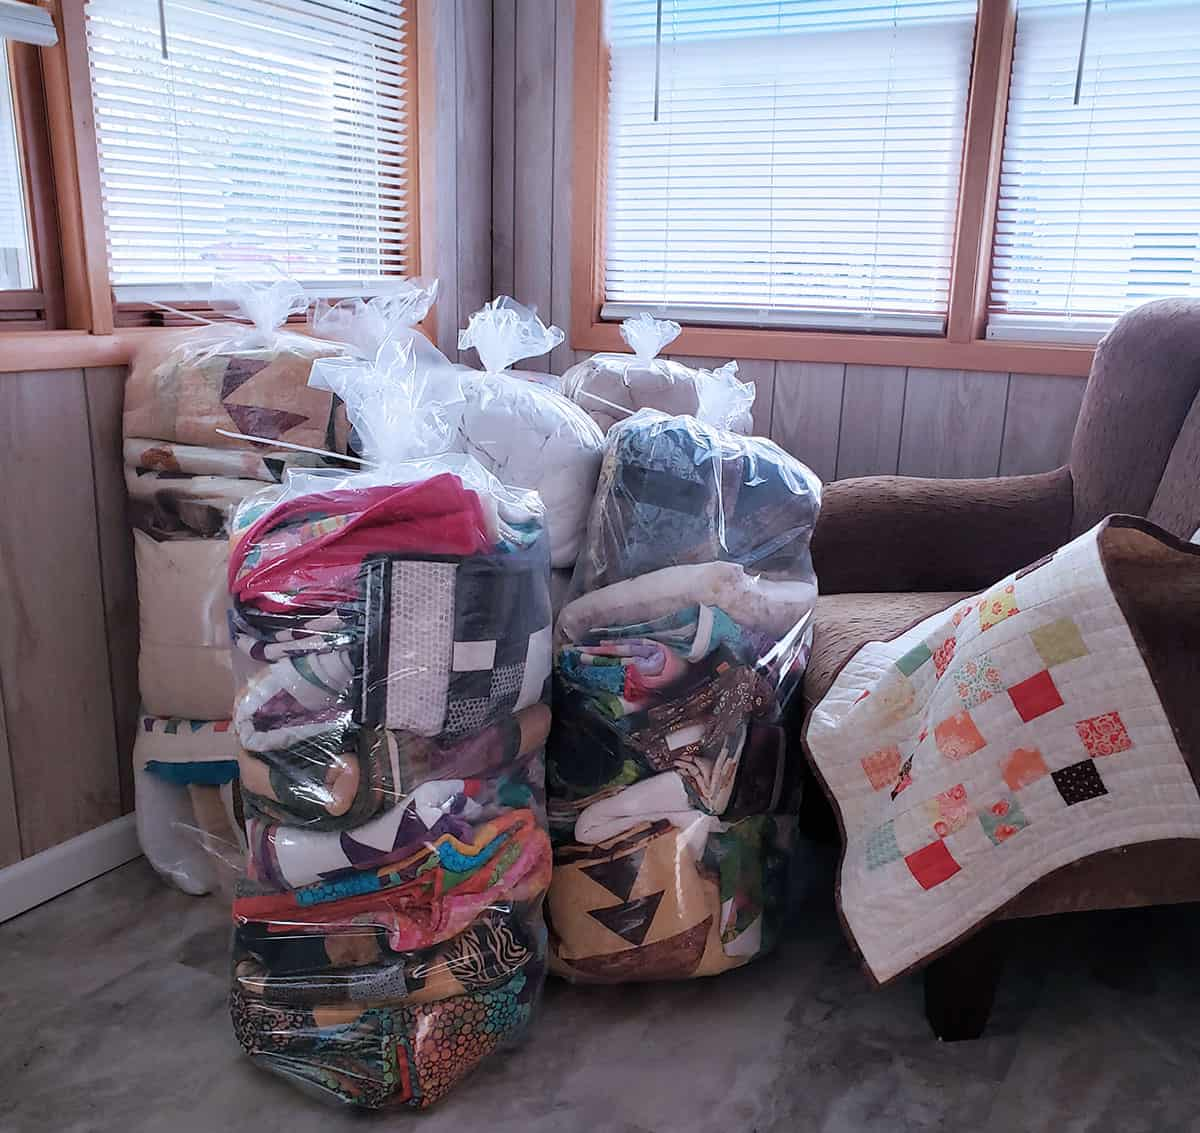 Storing quilts